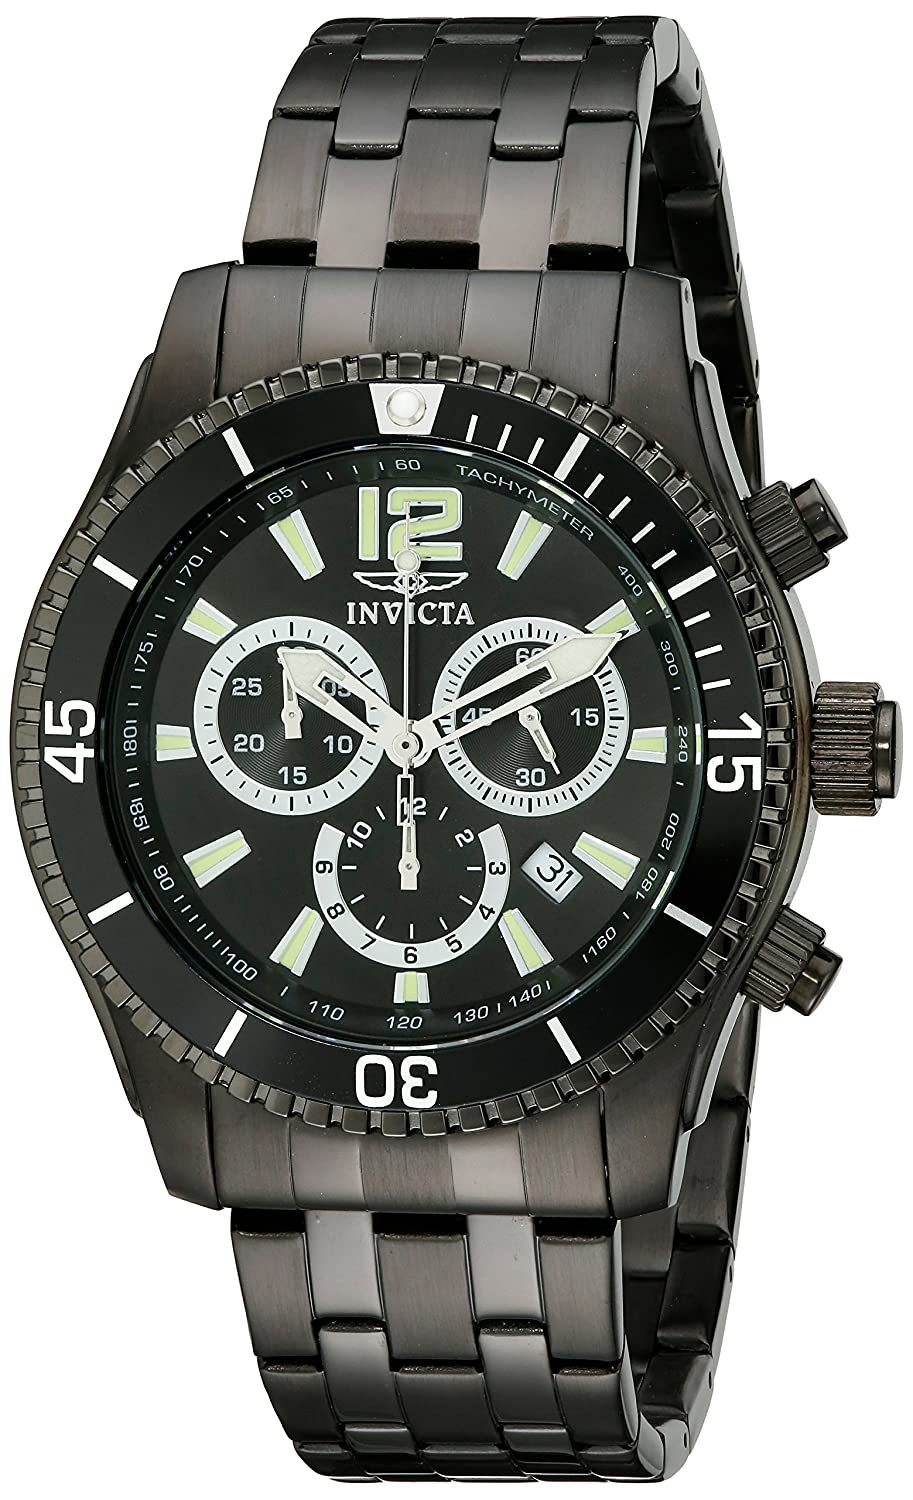 Invicta Men s 0624 Invicta II Chronograph Black Ion-Plated Stainless Steel Watch